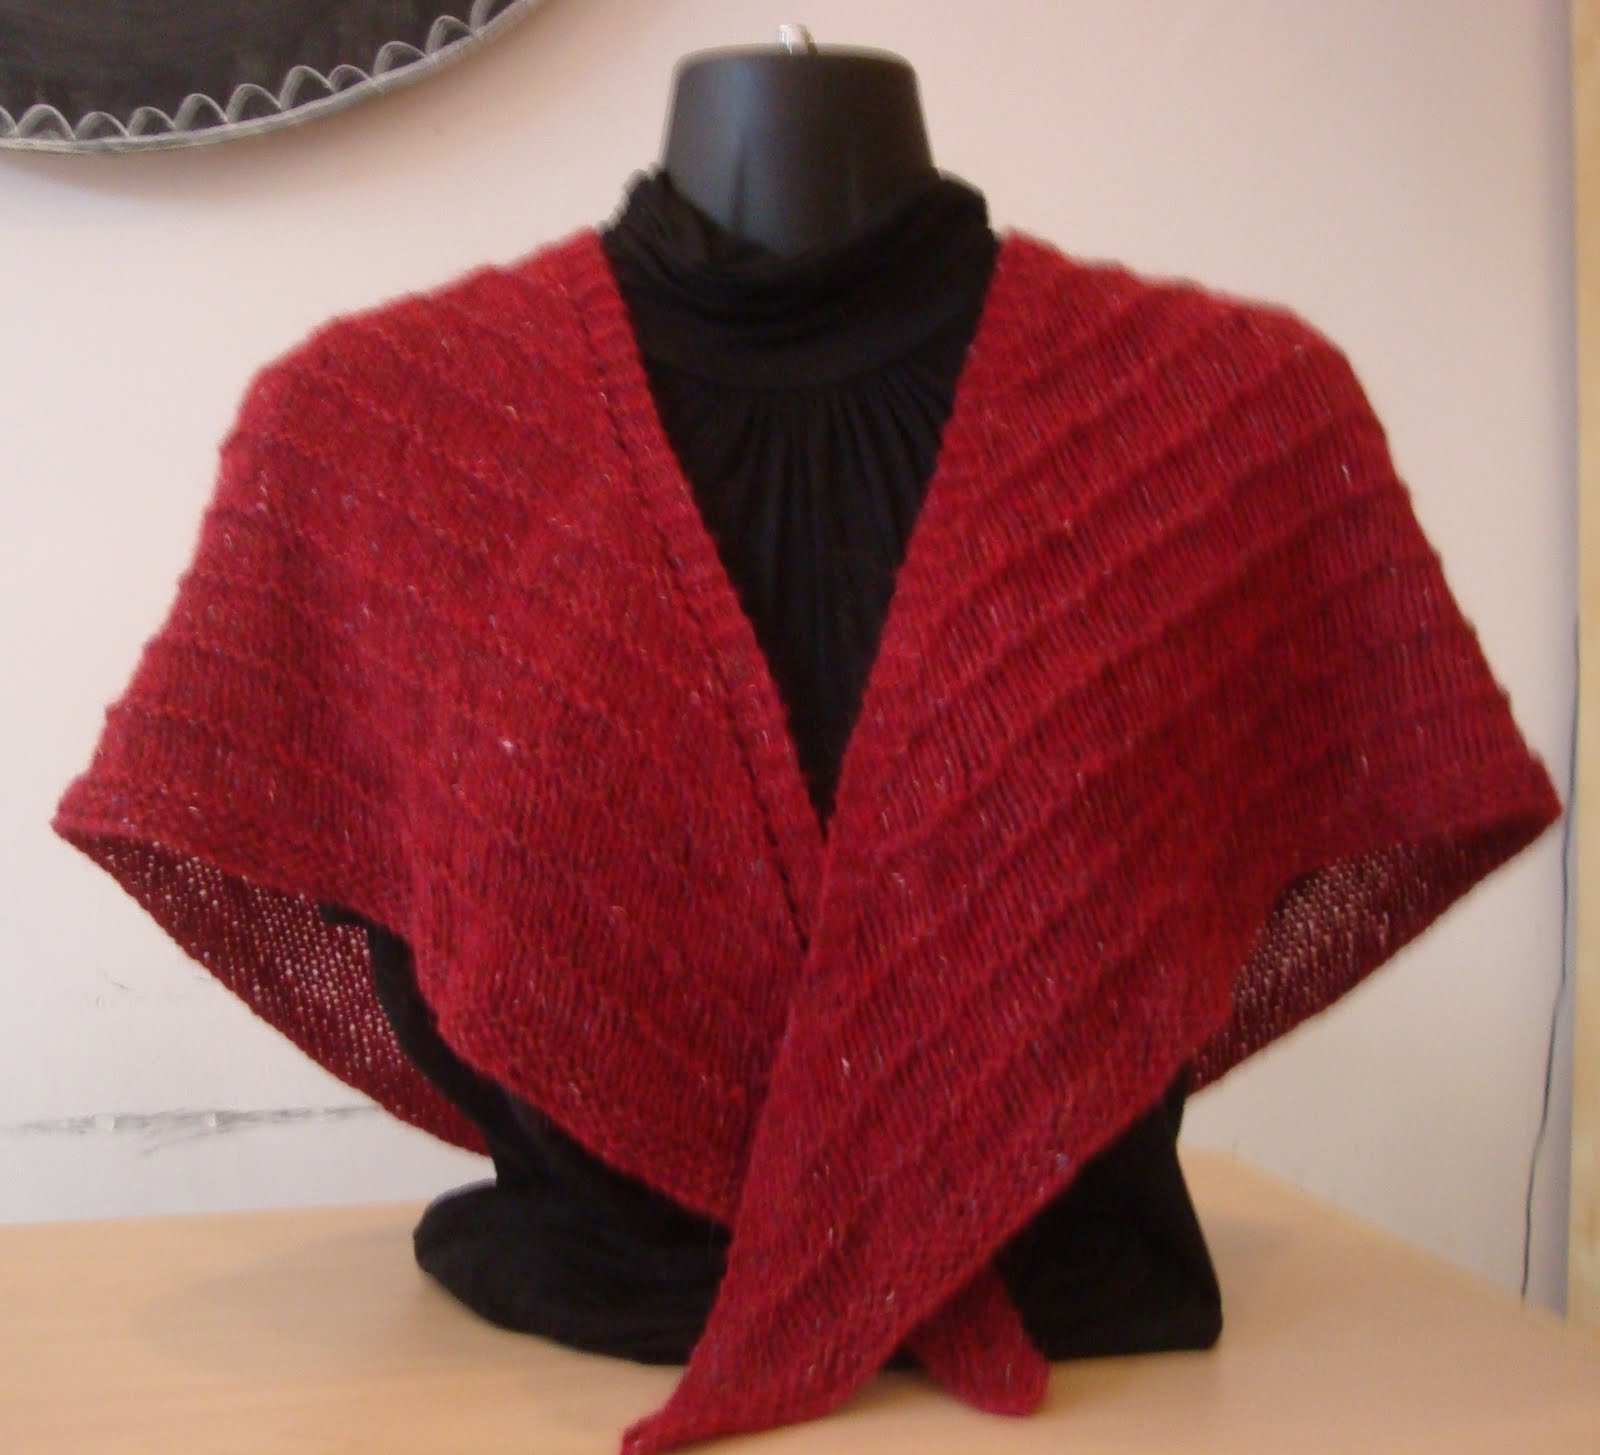 Triangle Shawl Free Pattern   Design Patterns